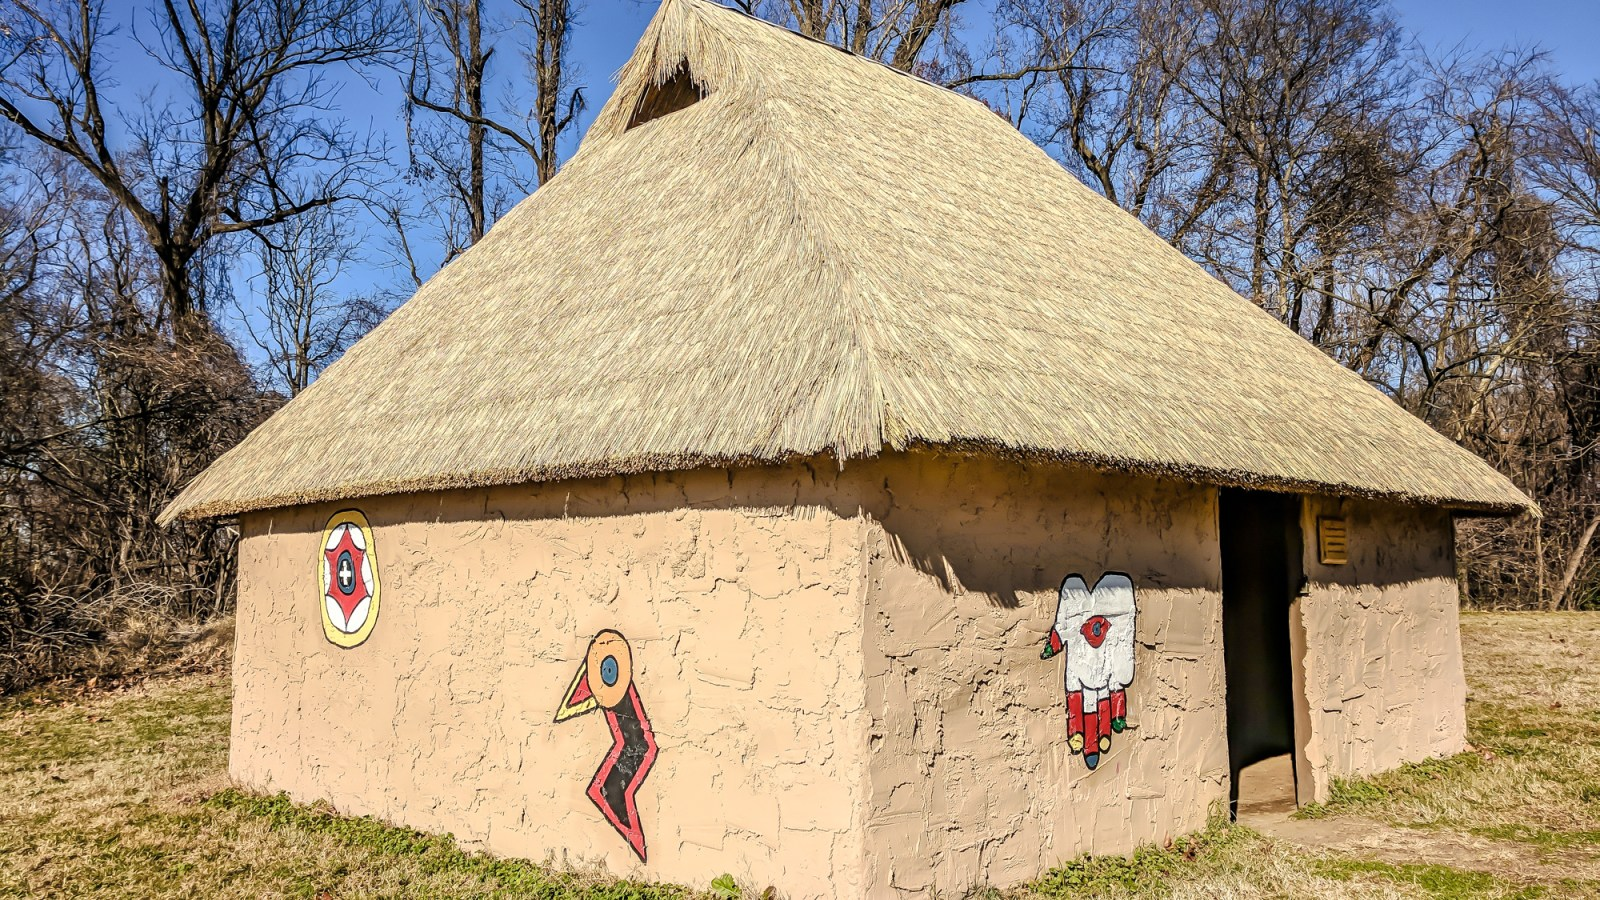 9 Reasons You Should Visit Chucalissa Indian Village | Memphis, Tennessee | West Tennessee Historic Landmark | History museum | Native American, American Indian historical site | Chickasaw, Choctaw, Cherokee, Quapaw, Mississippian culture | Earthen Mound complex